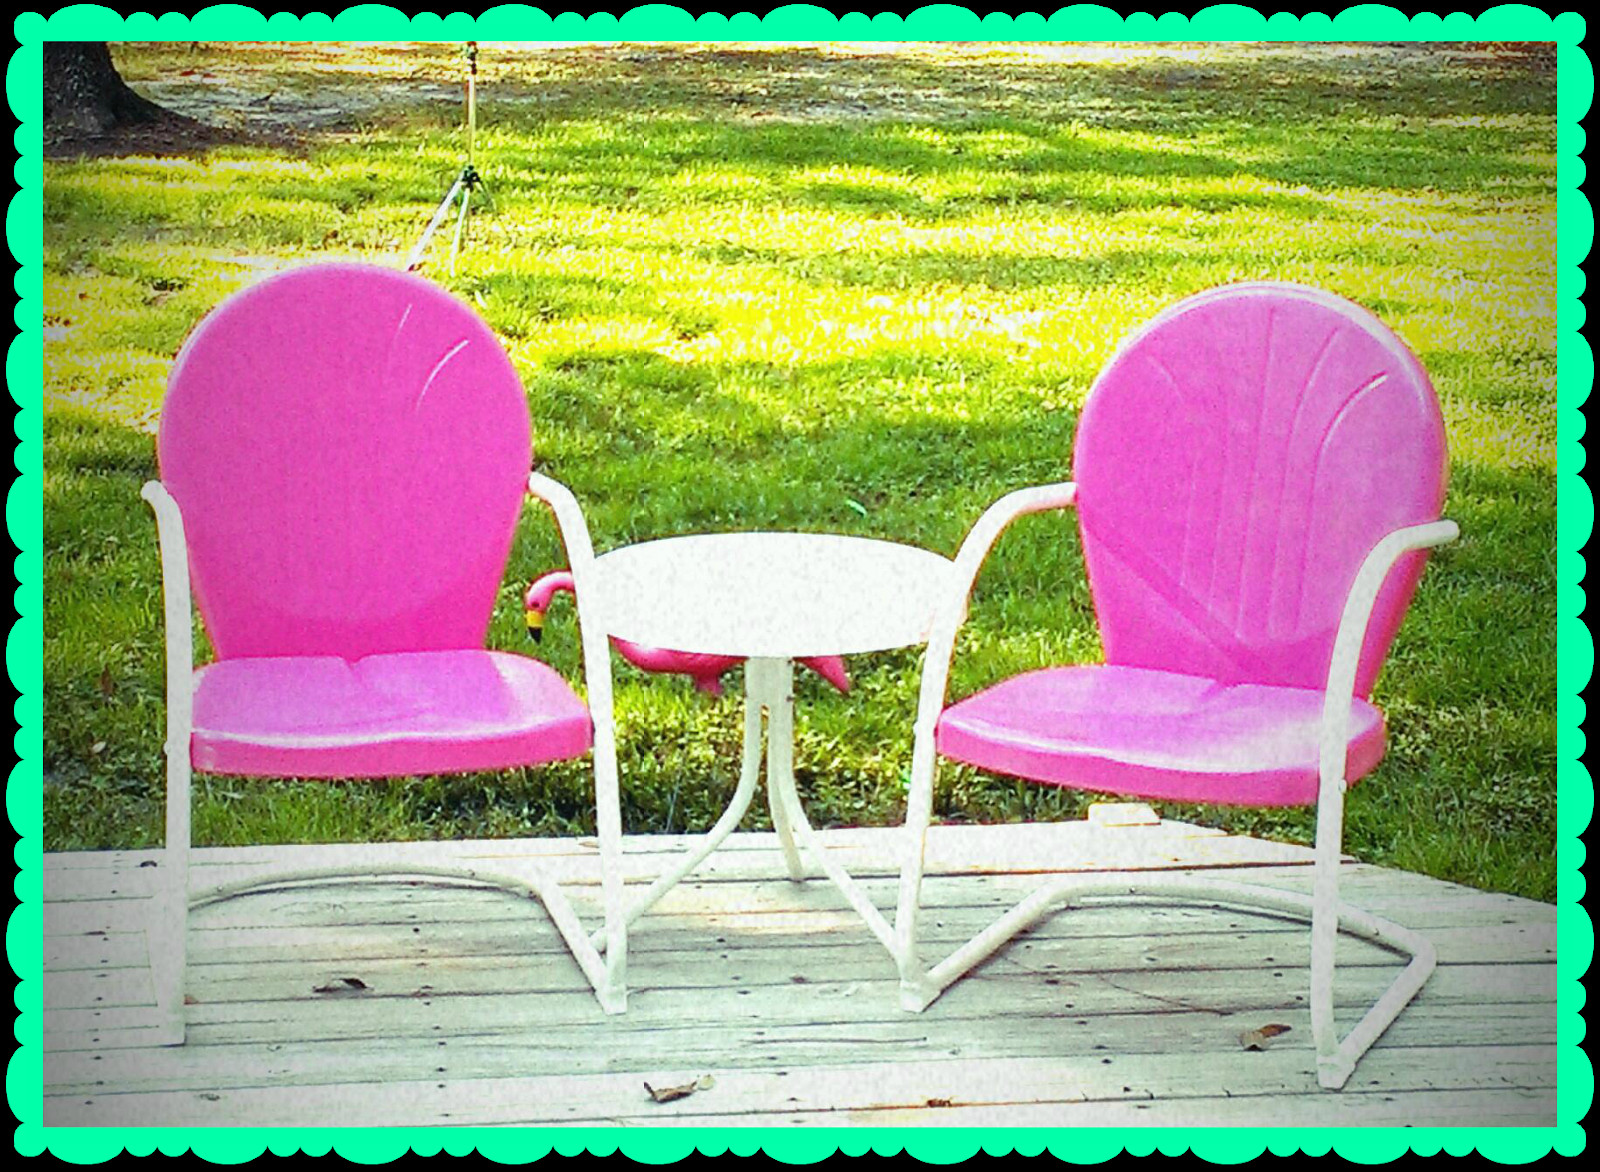 Best ideas about Retro Patio Furniture . Save or Pin The Sassy Southern Peach Retro Patio Furniture Now.